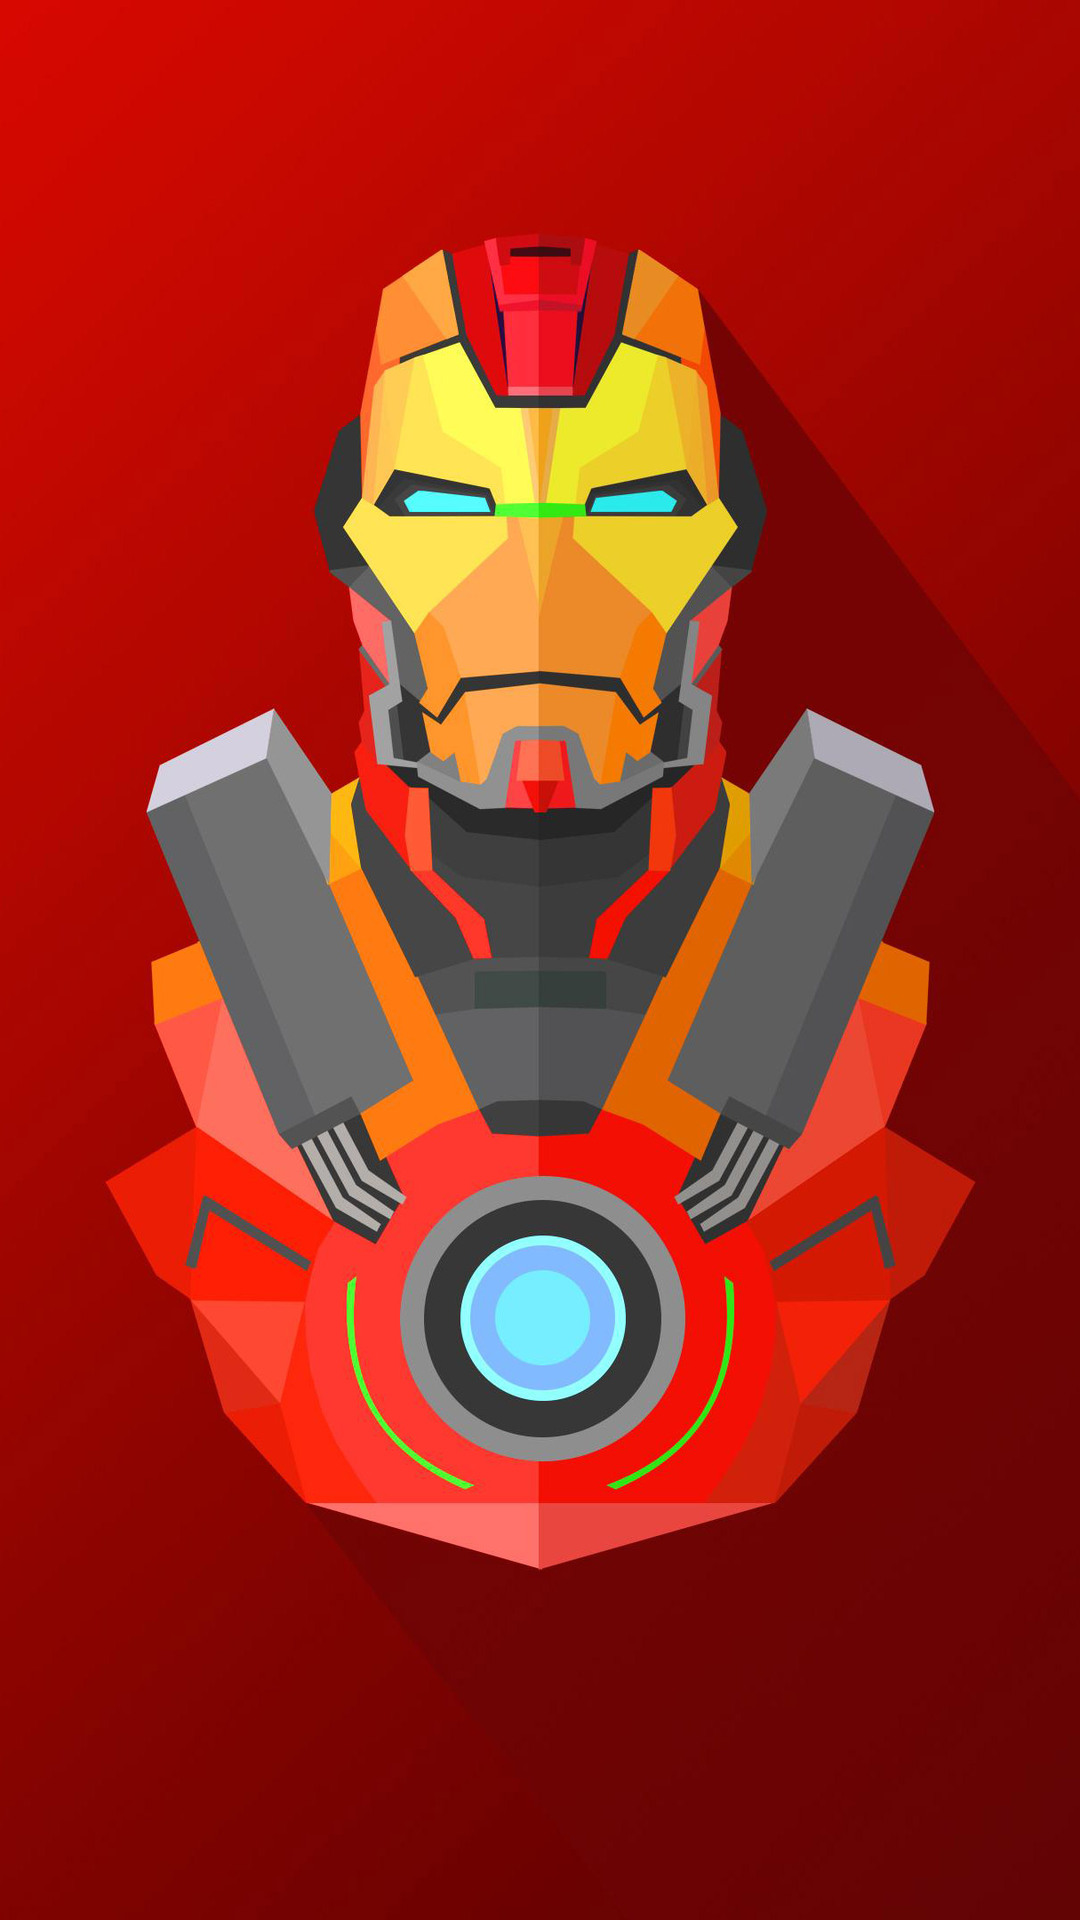 How To Set Up Animated Wallpaper Iphone X 1080x1920 Iron Man Heartbreaker Artwork 4k Iphone 7 6s 6